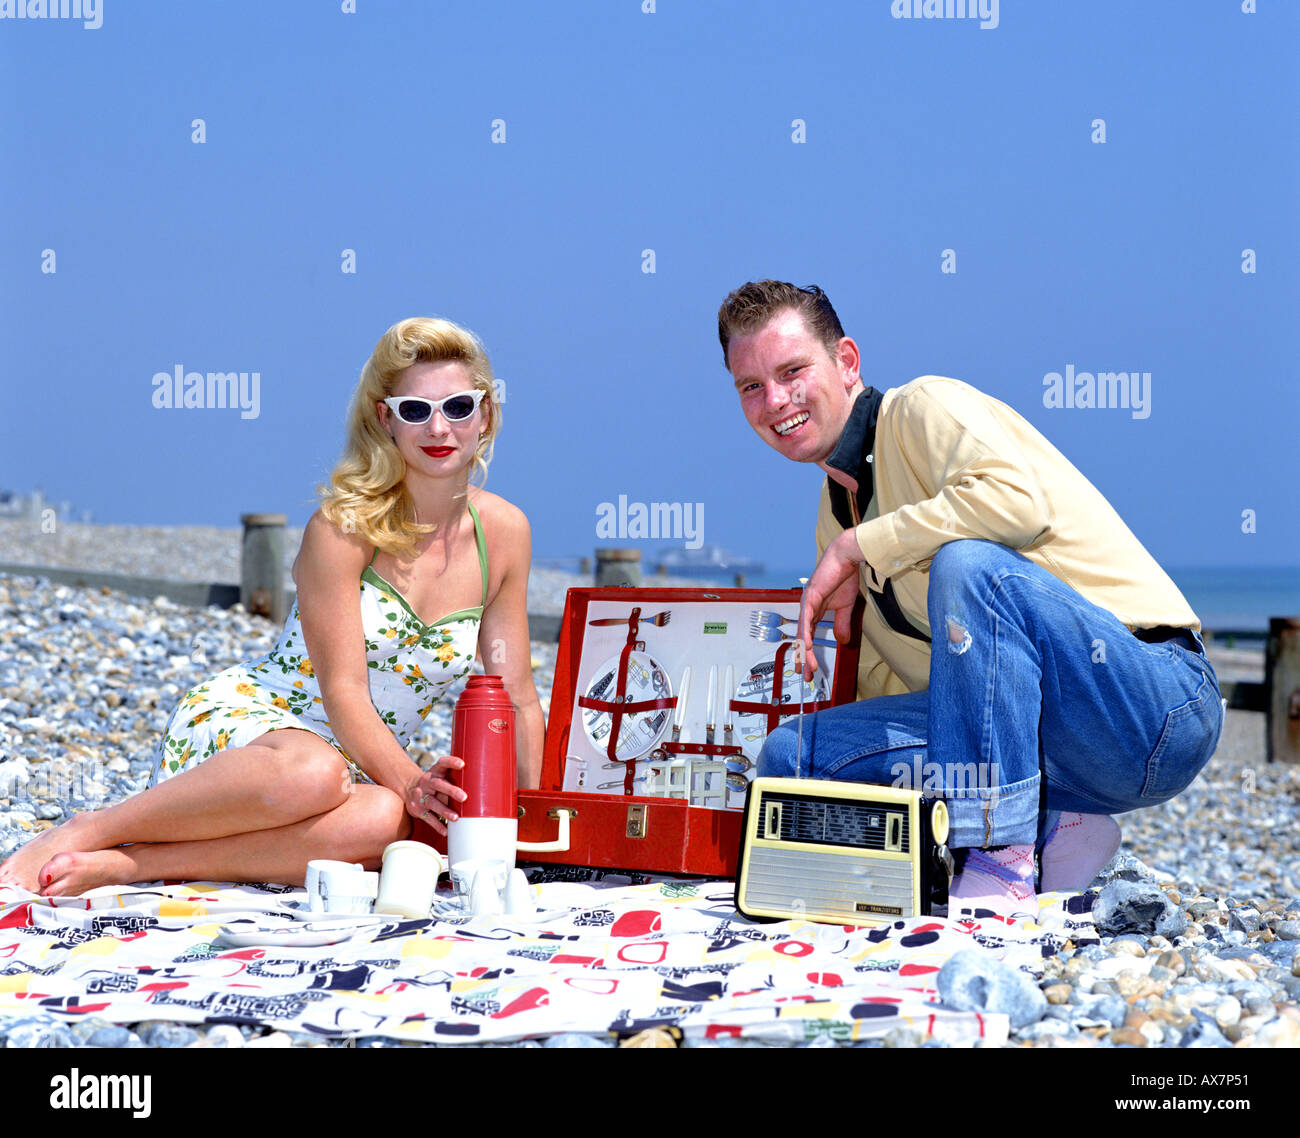 50s Style Couple sitting on the beach with picnic hamper - Stock Image